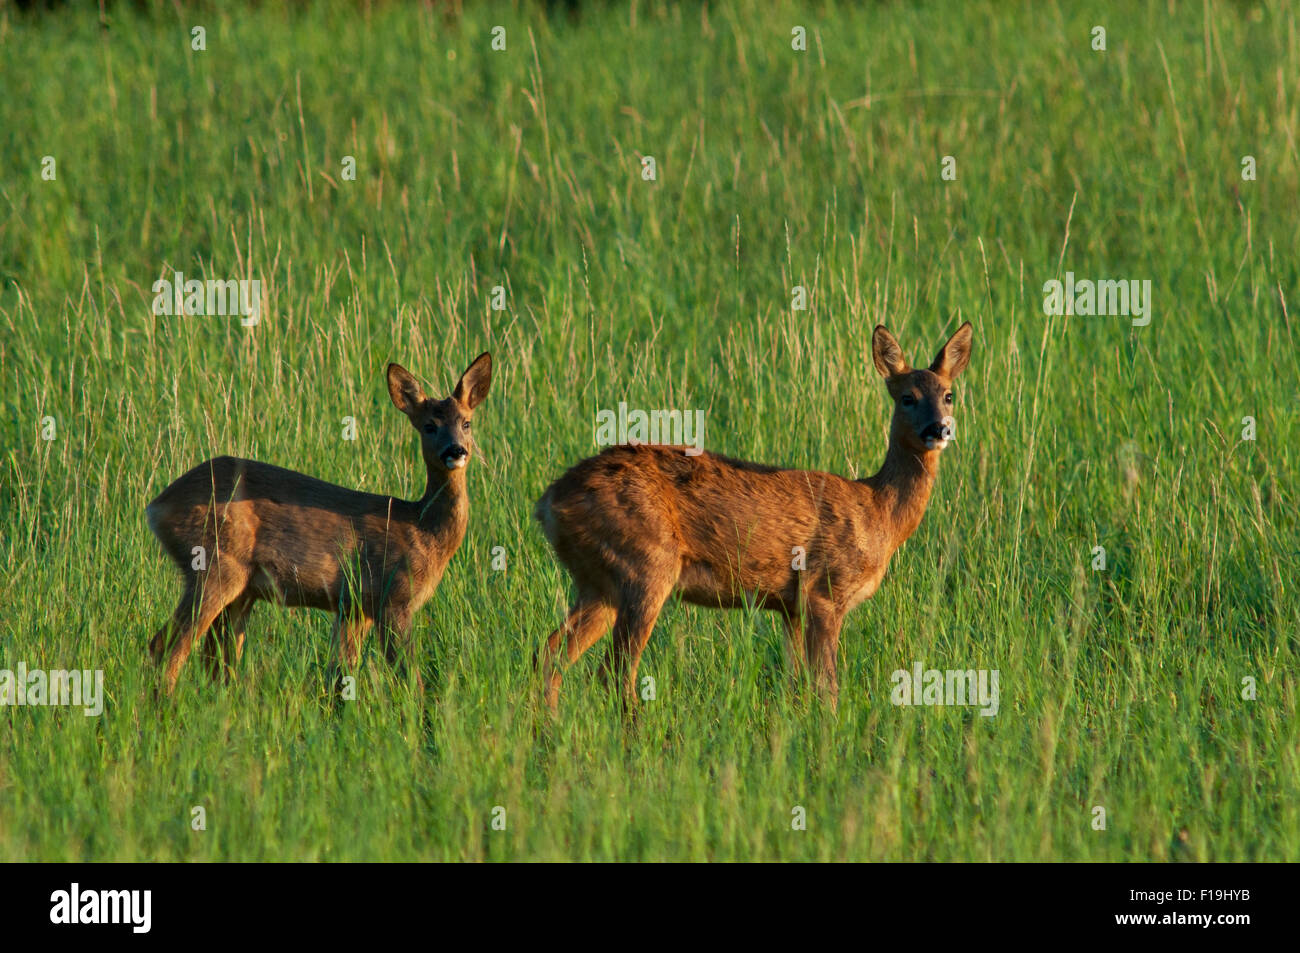 Two deer(Capreolus capreolus) on meadow look directly into the camera, Eifel, Rhineland-Palatinate, Germany, Europe - Stock Image